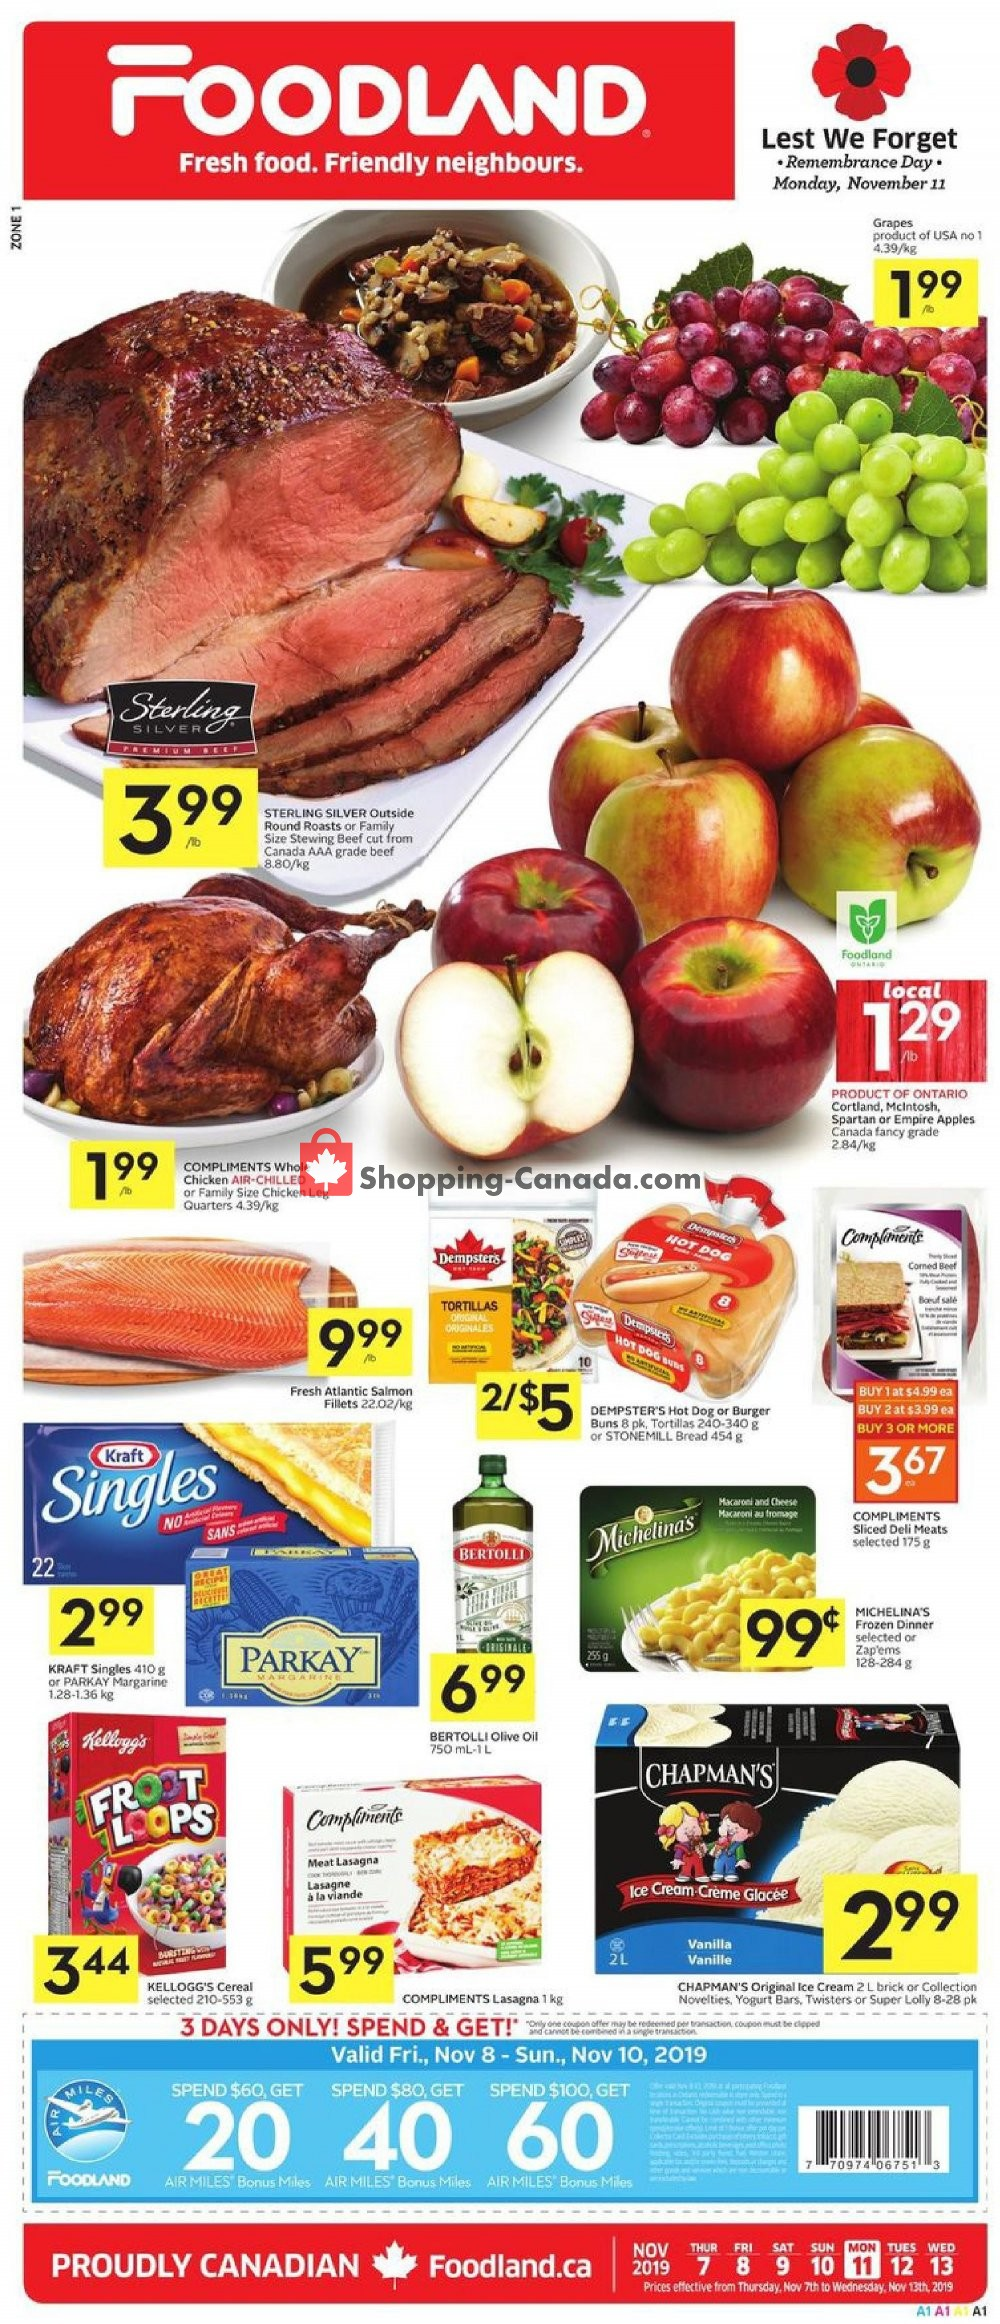 Flyer Foodland Canada - from Thursday November 7, 2019 to Wednesday November 13, 2019